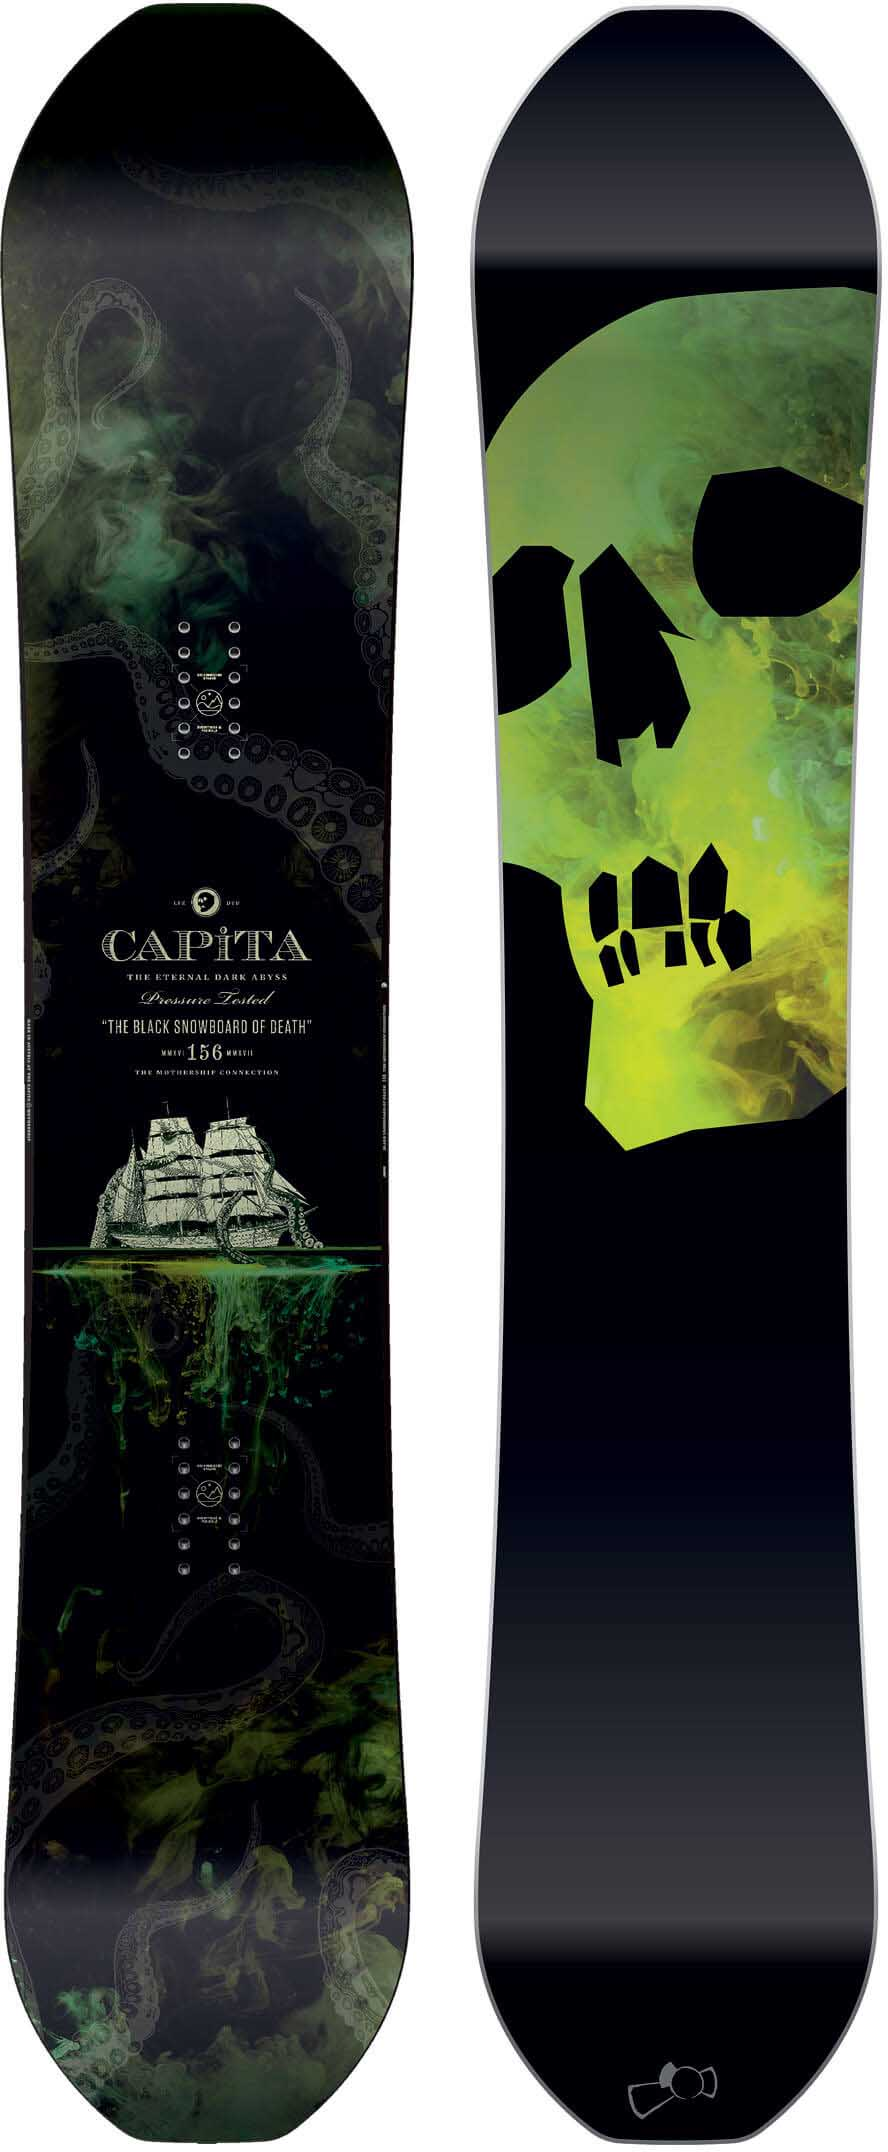 image capita-black-snowboard-of-death-156-jpg